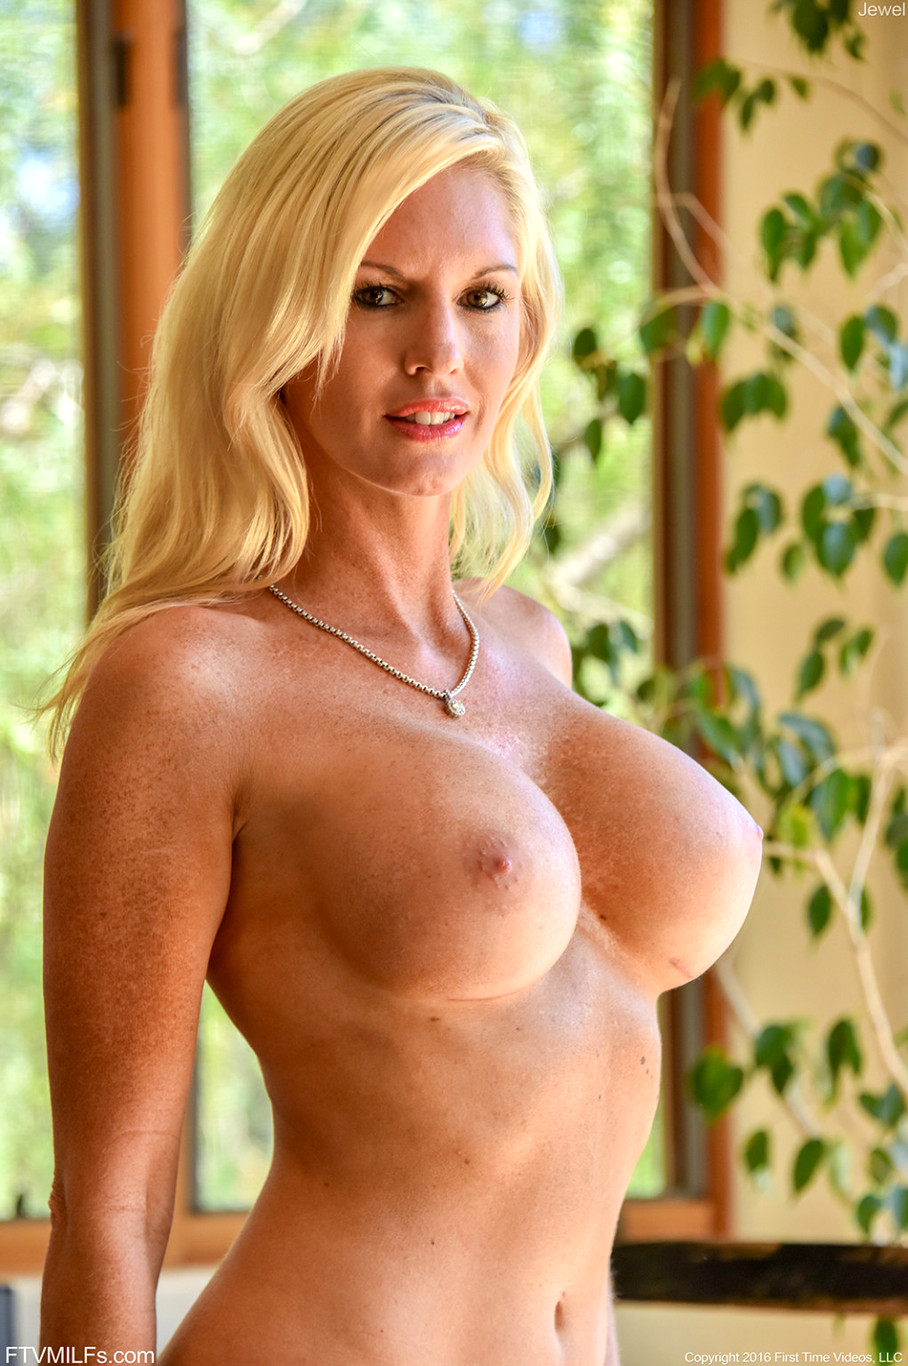 milf cougar berlin elite escort